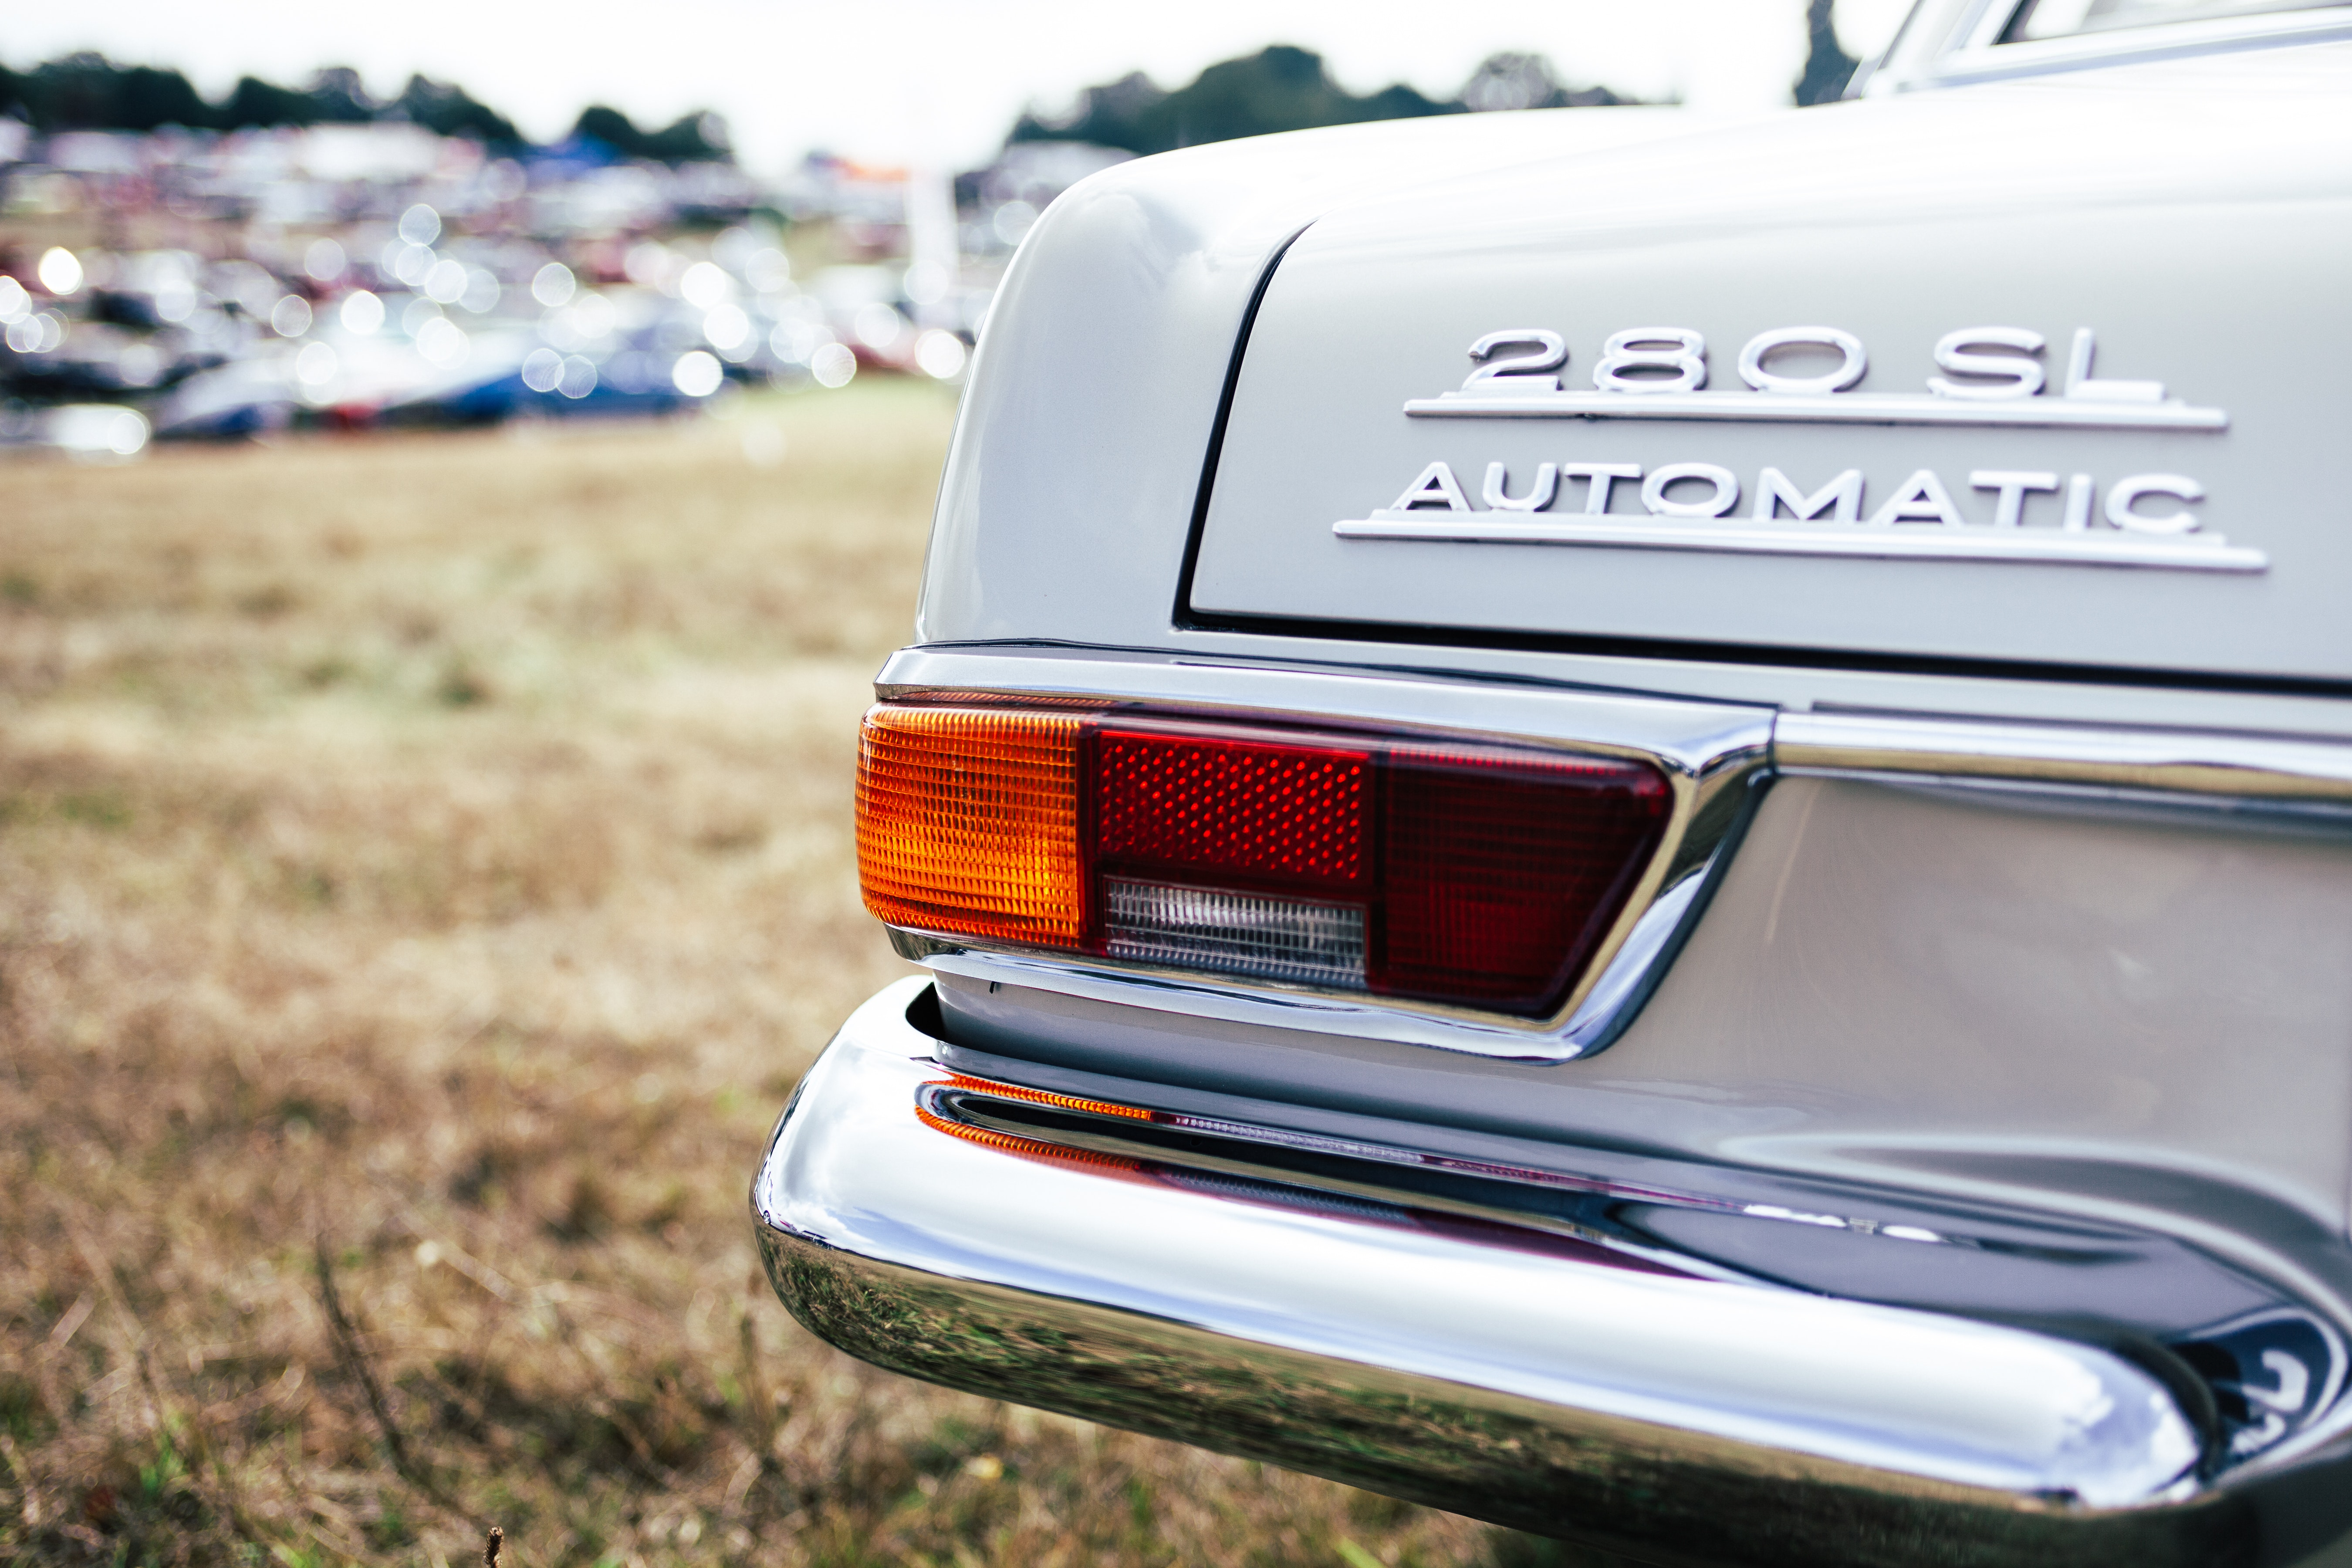 White mercedes benz 280 sl automatic photo